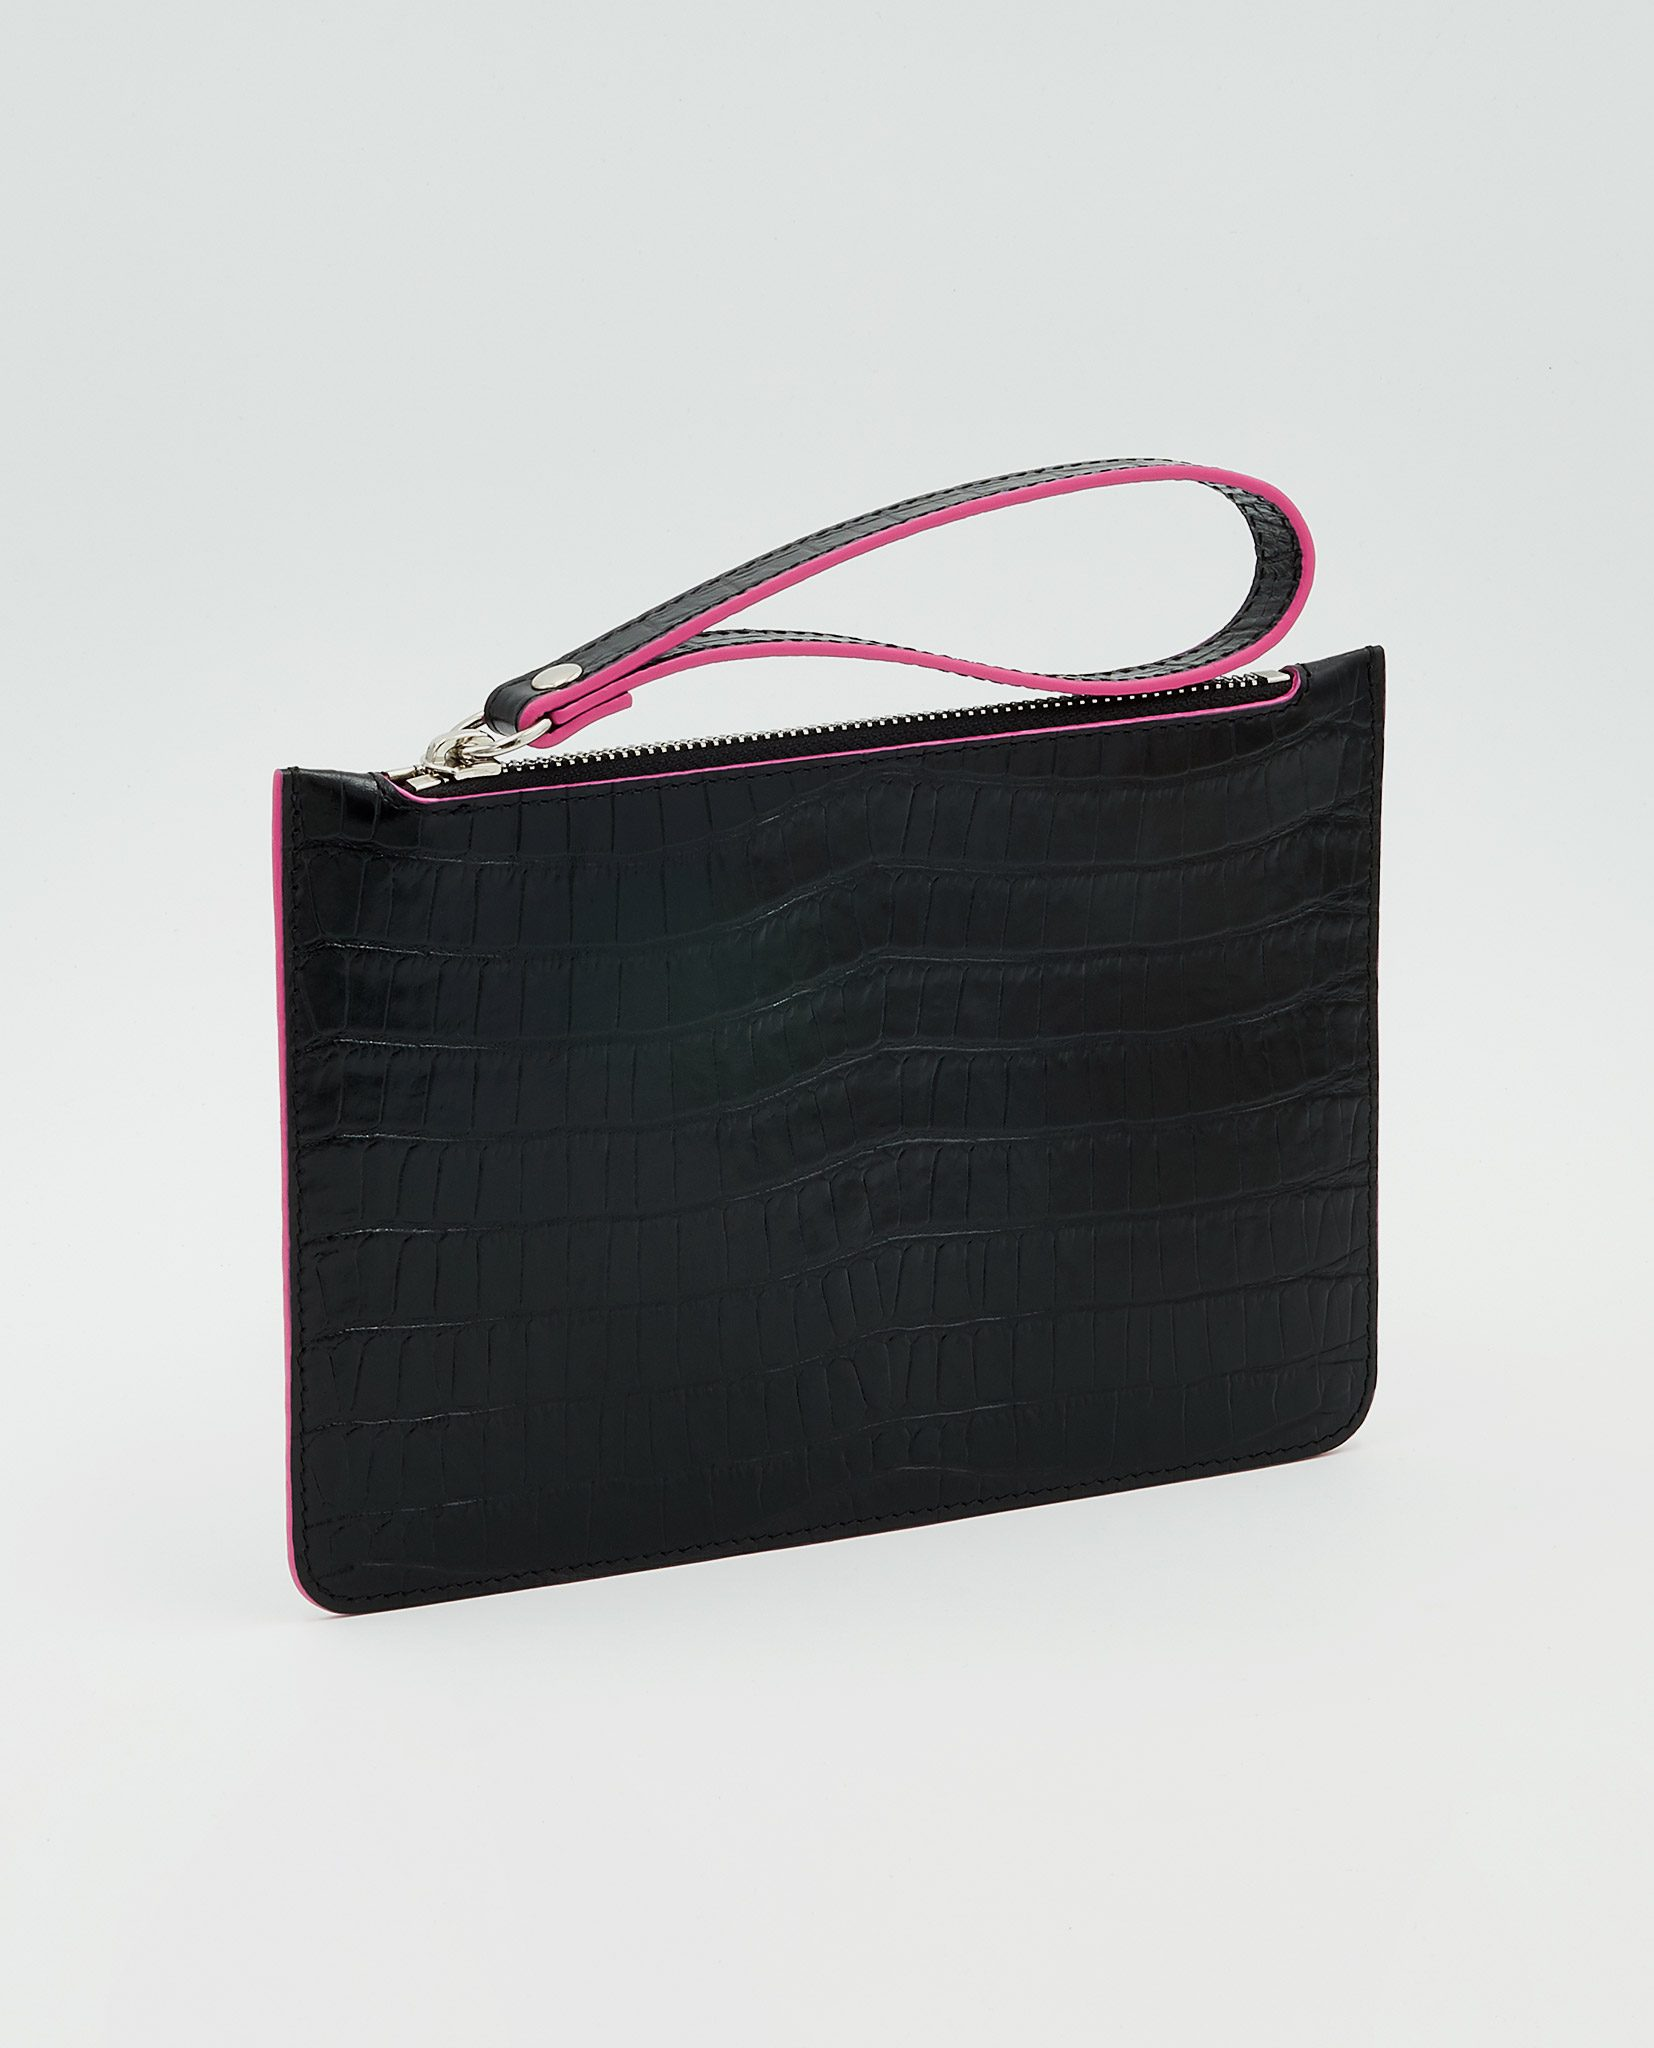 Soofre Small Pouch Crocodile Embossed Leather Black-Fuchsia